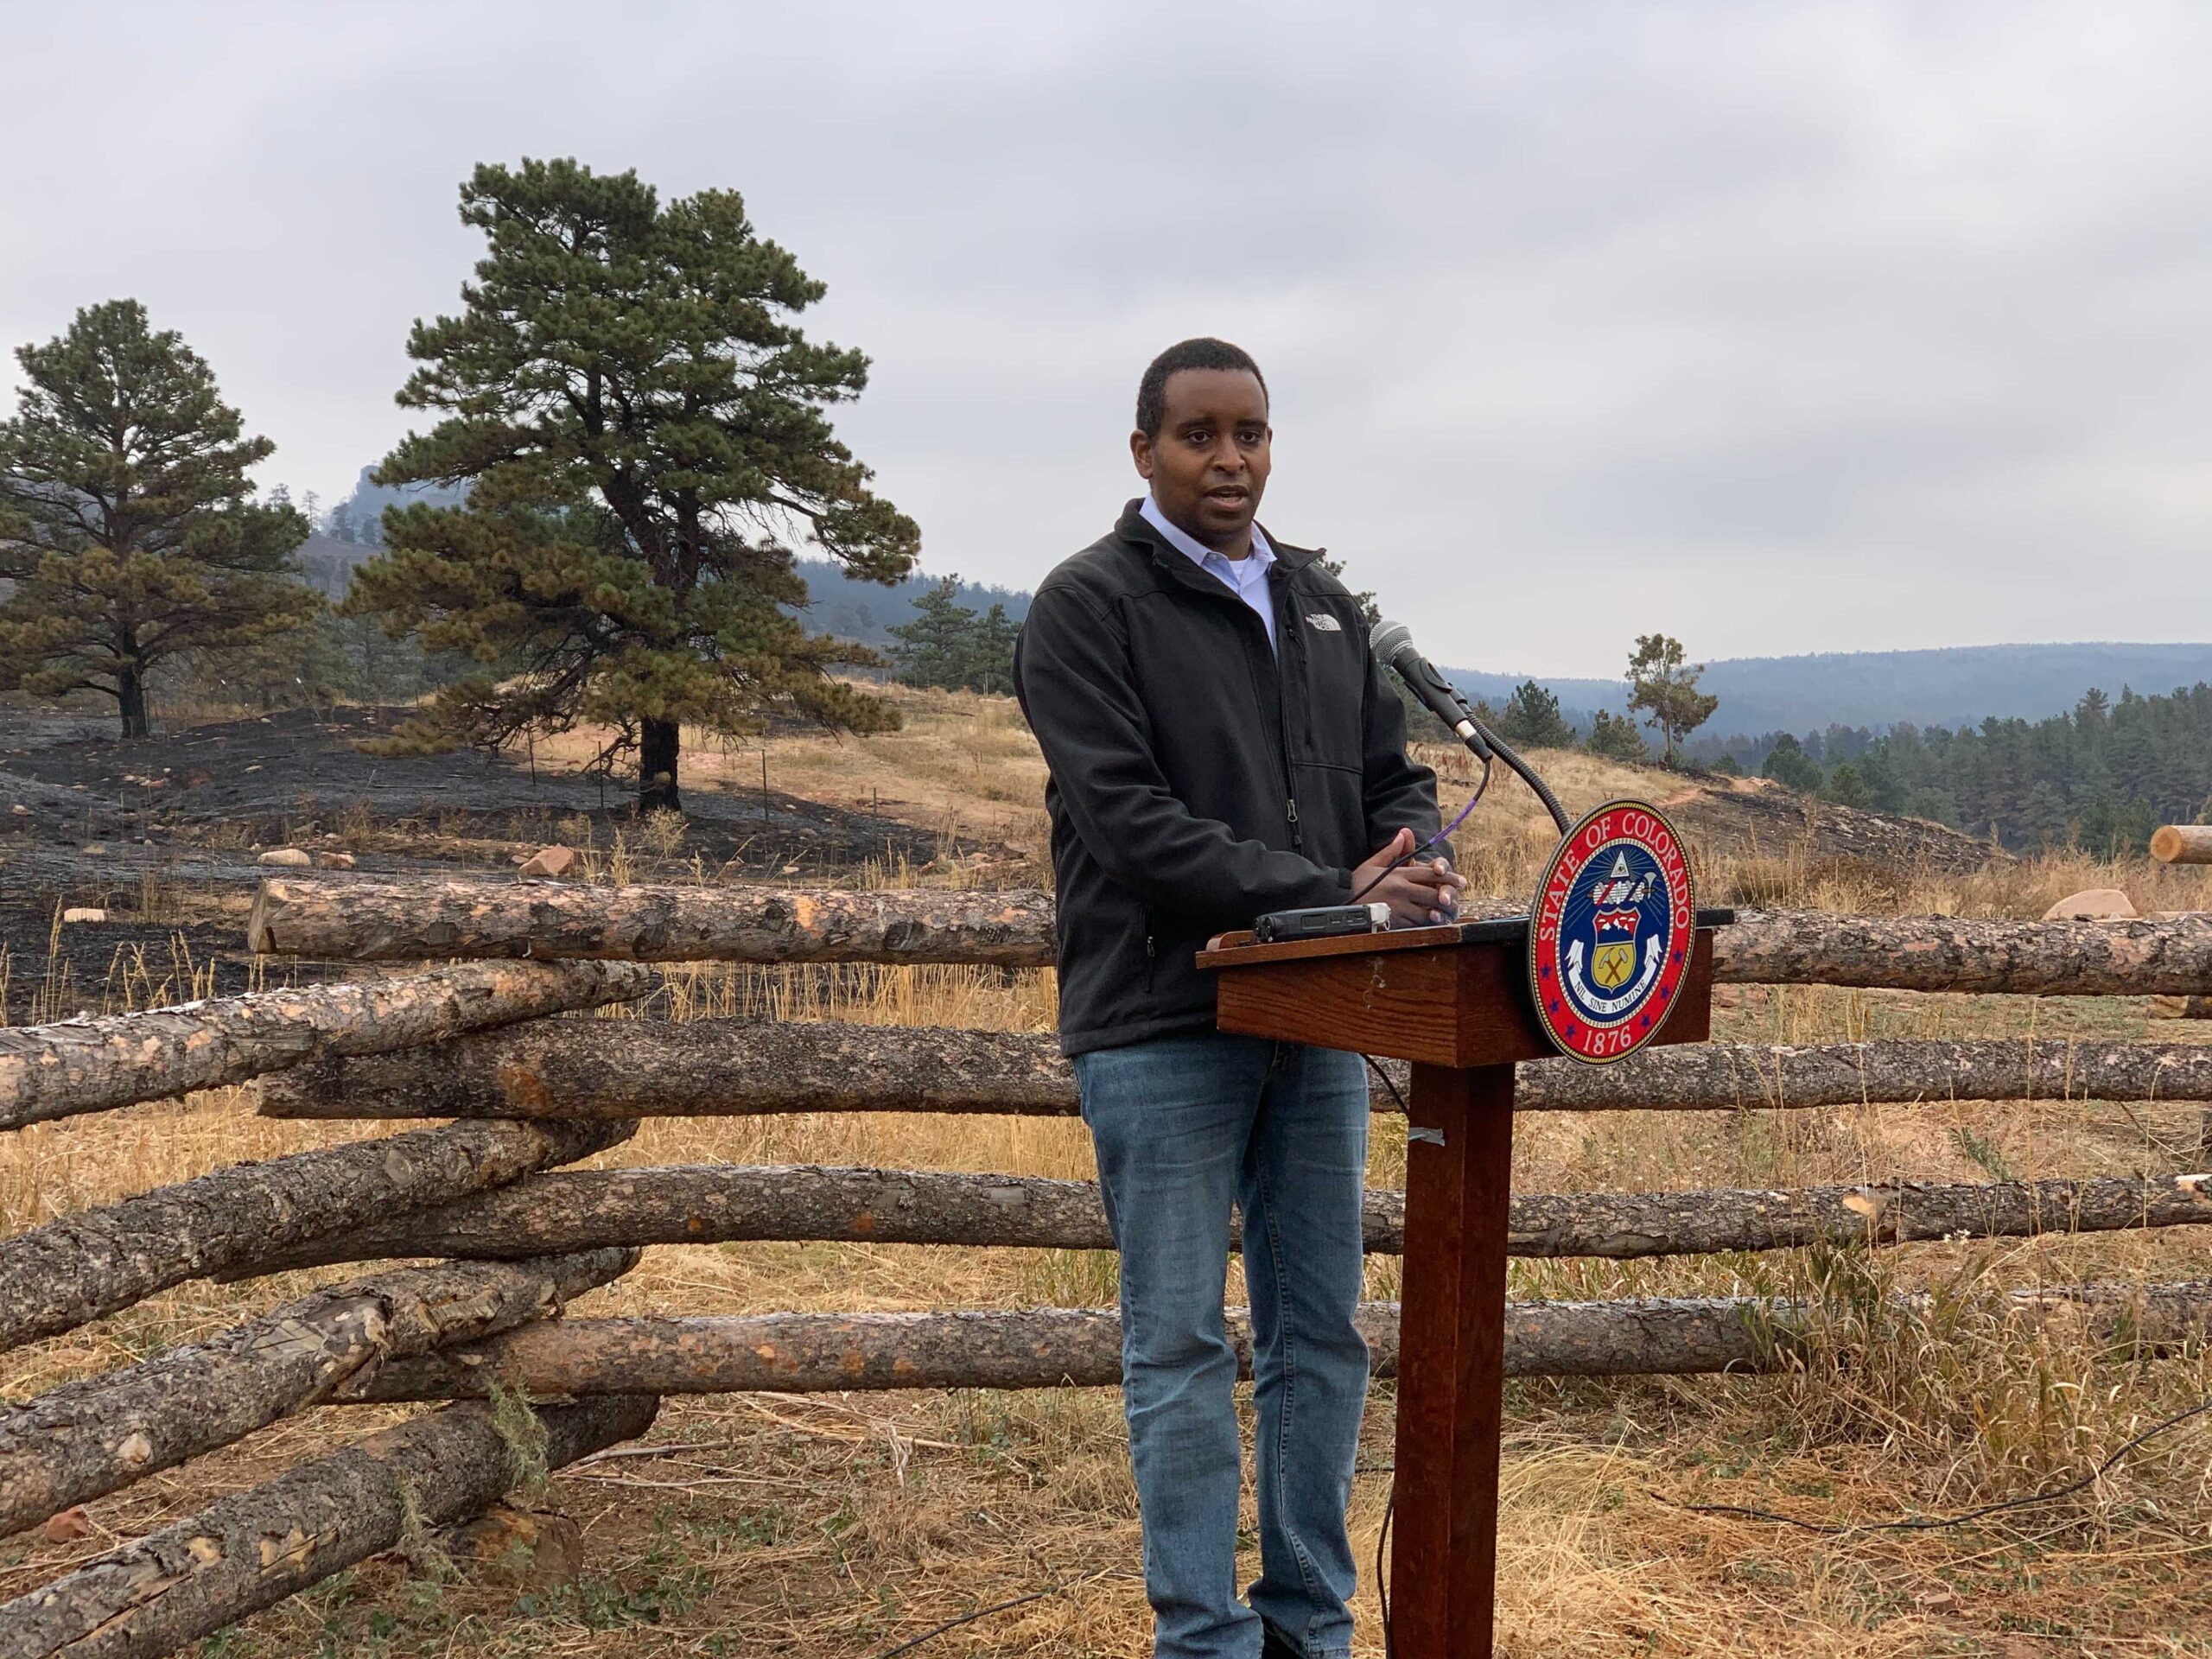 Rep. Joe Neguse provides an update on Colorado wildfires with Gov. Jared Polis on Friday, Oct. 23, 2020.